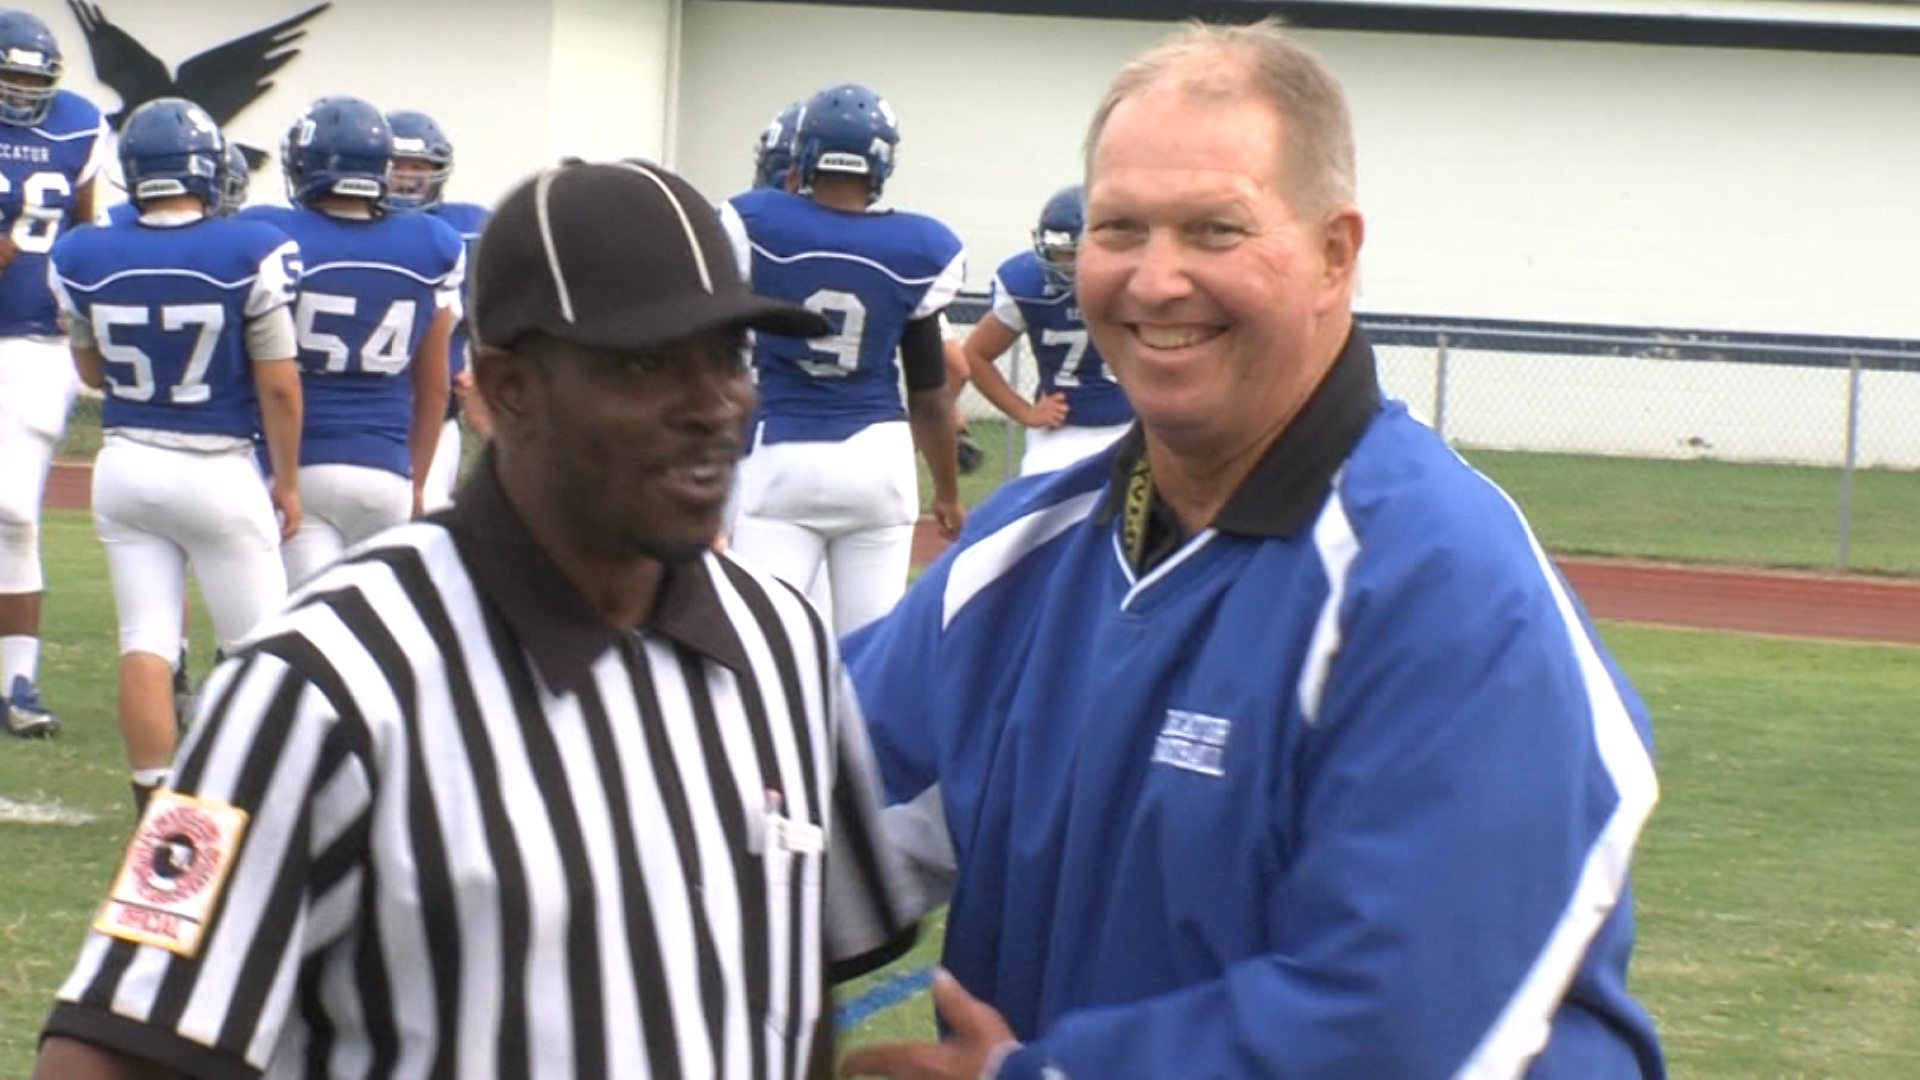 Decatur Looks For A Winning Season In 2018